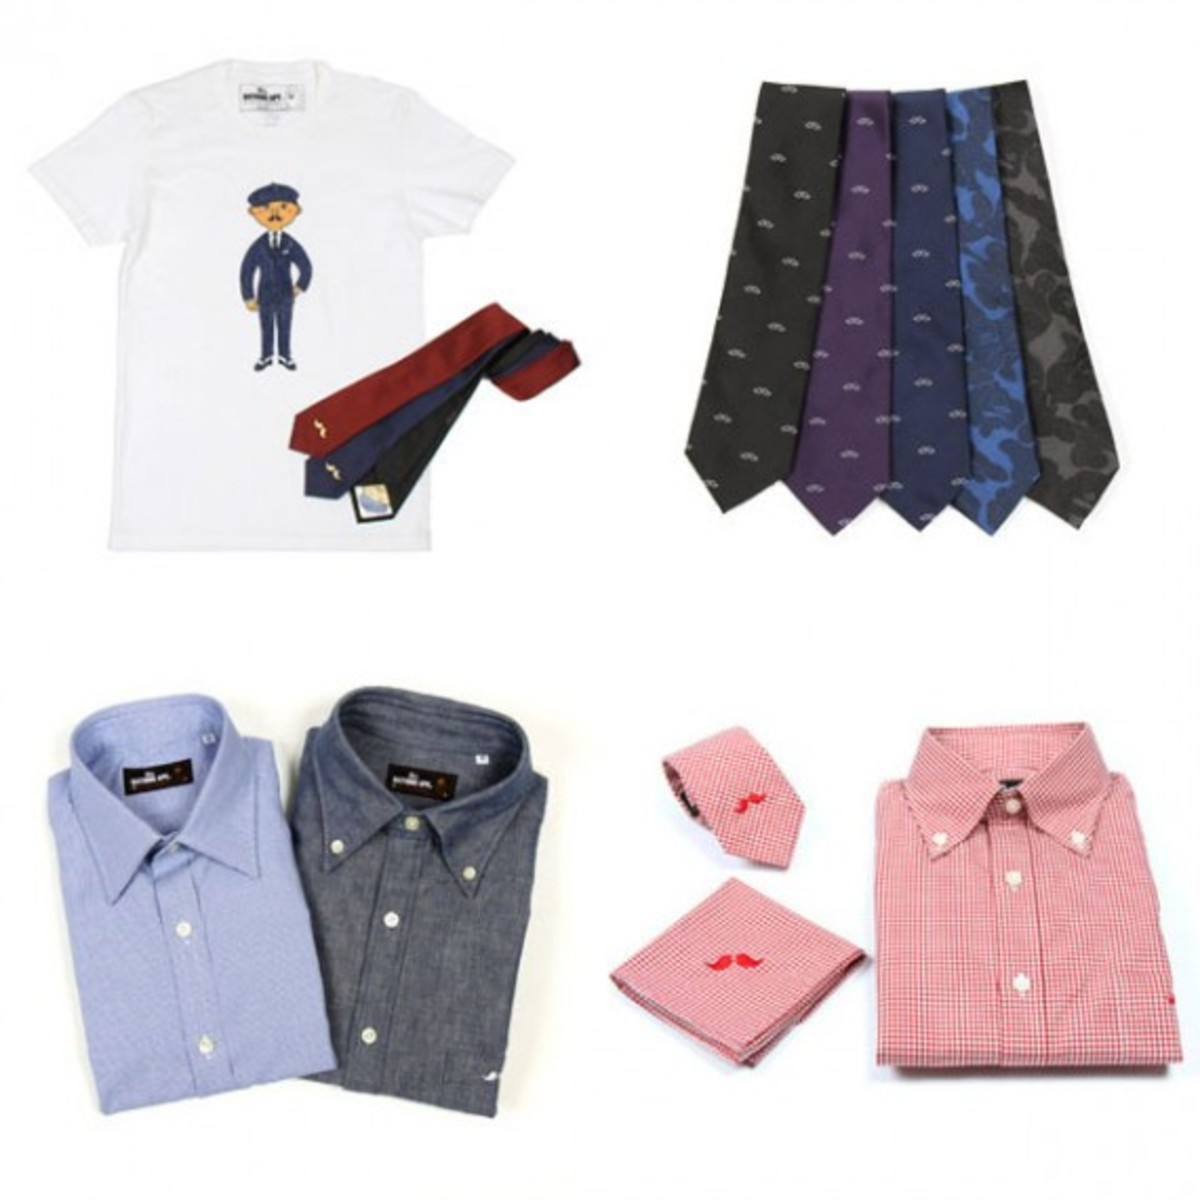 Mr. BATHING APE Spring Summer 2011 Collection